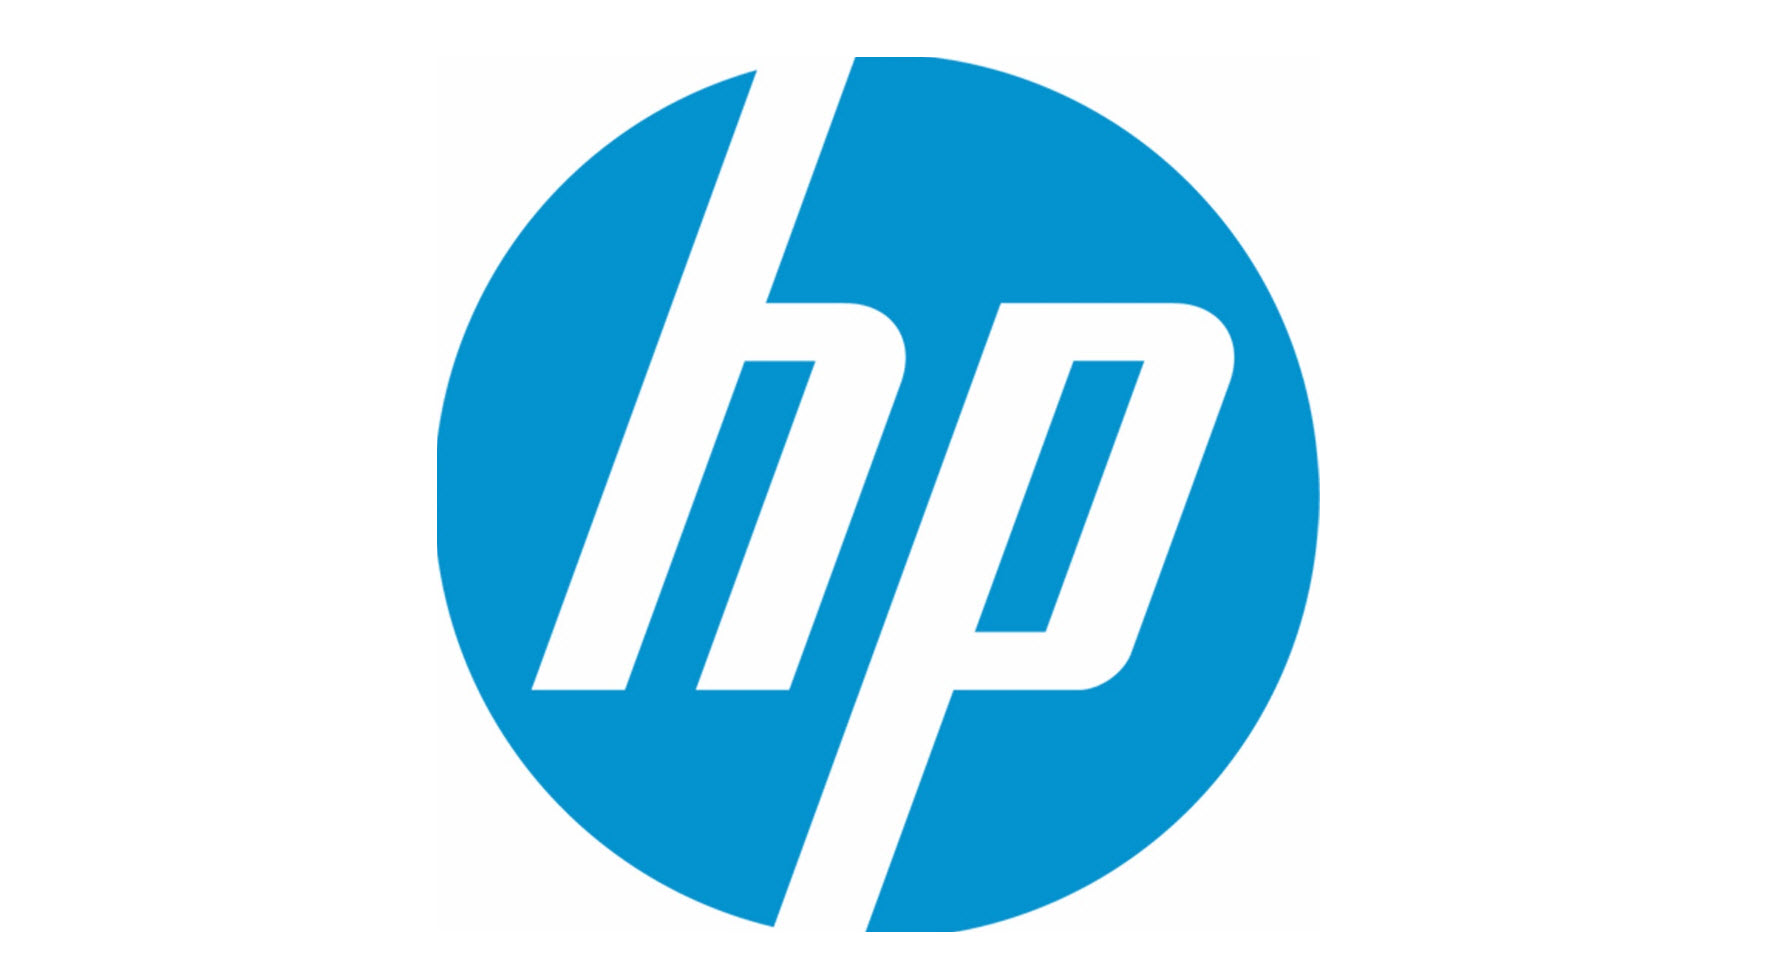 hp customer service contact number helpline 0345 270 4142